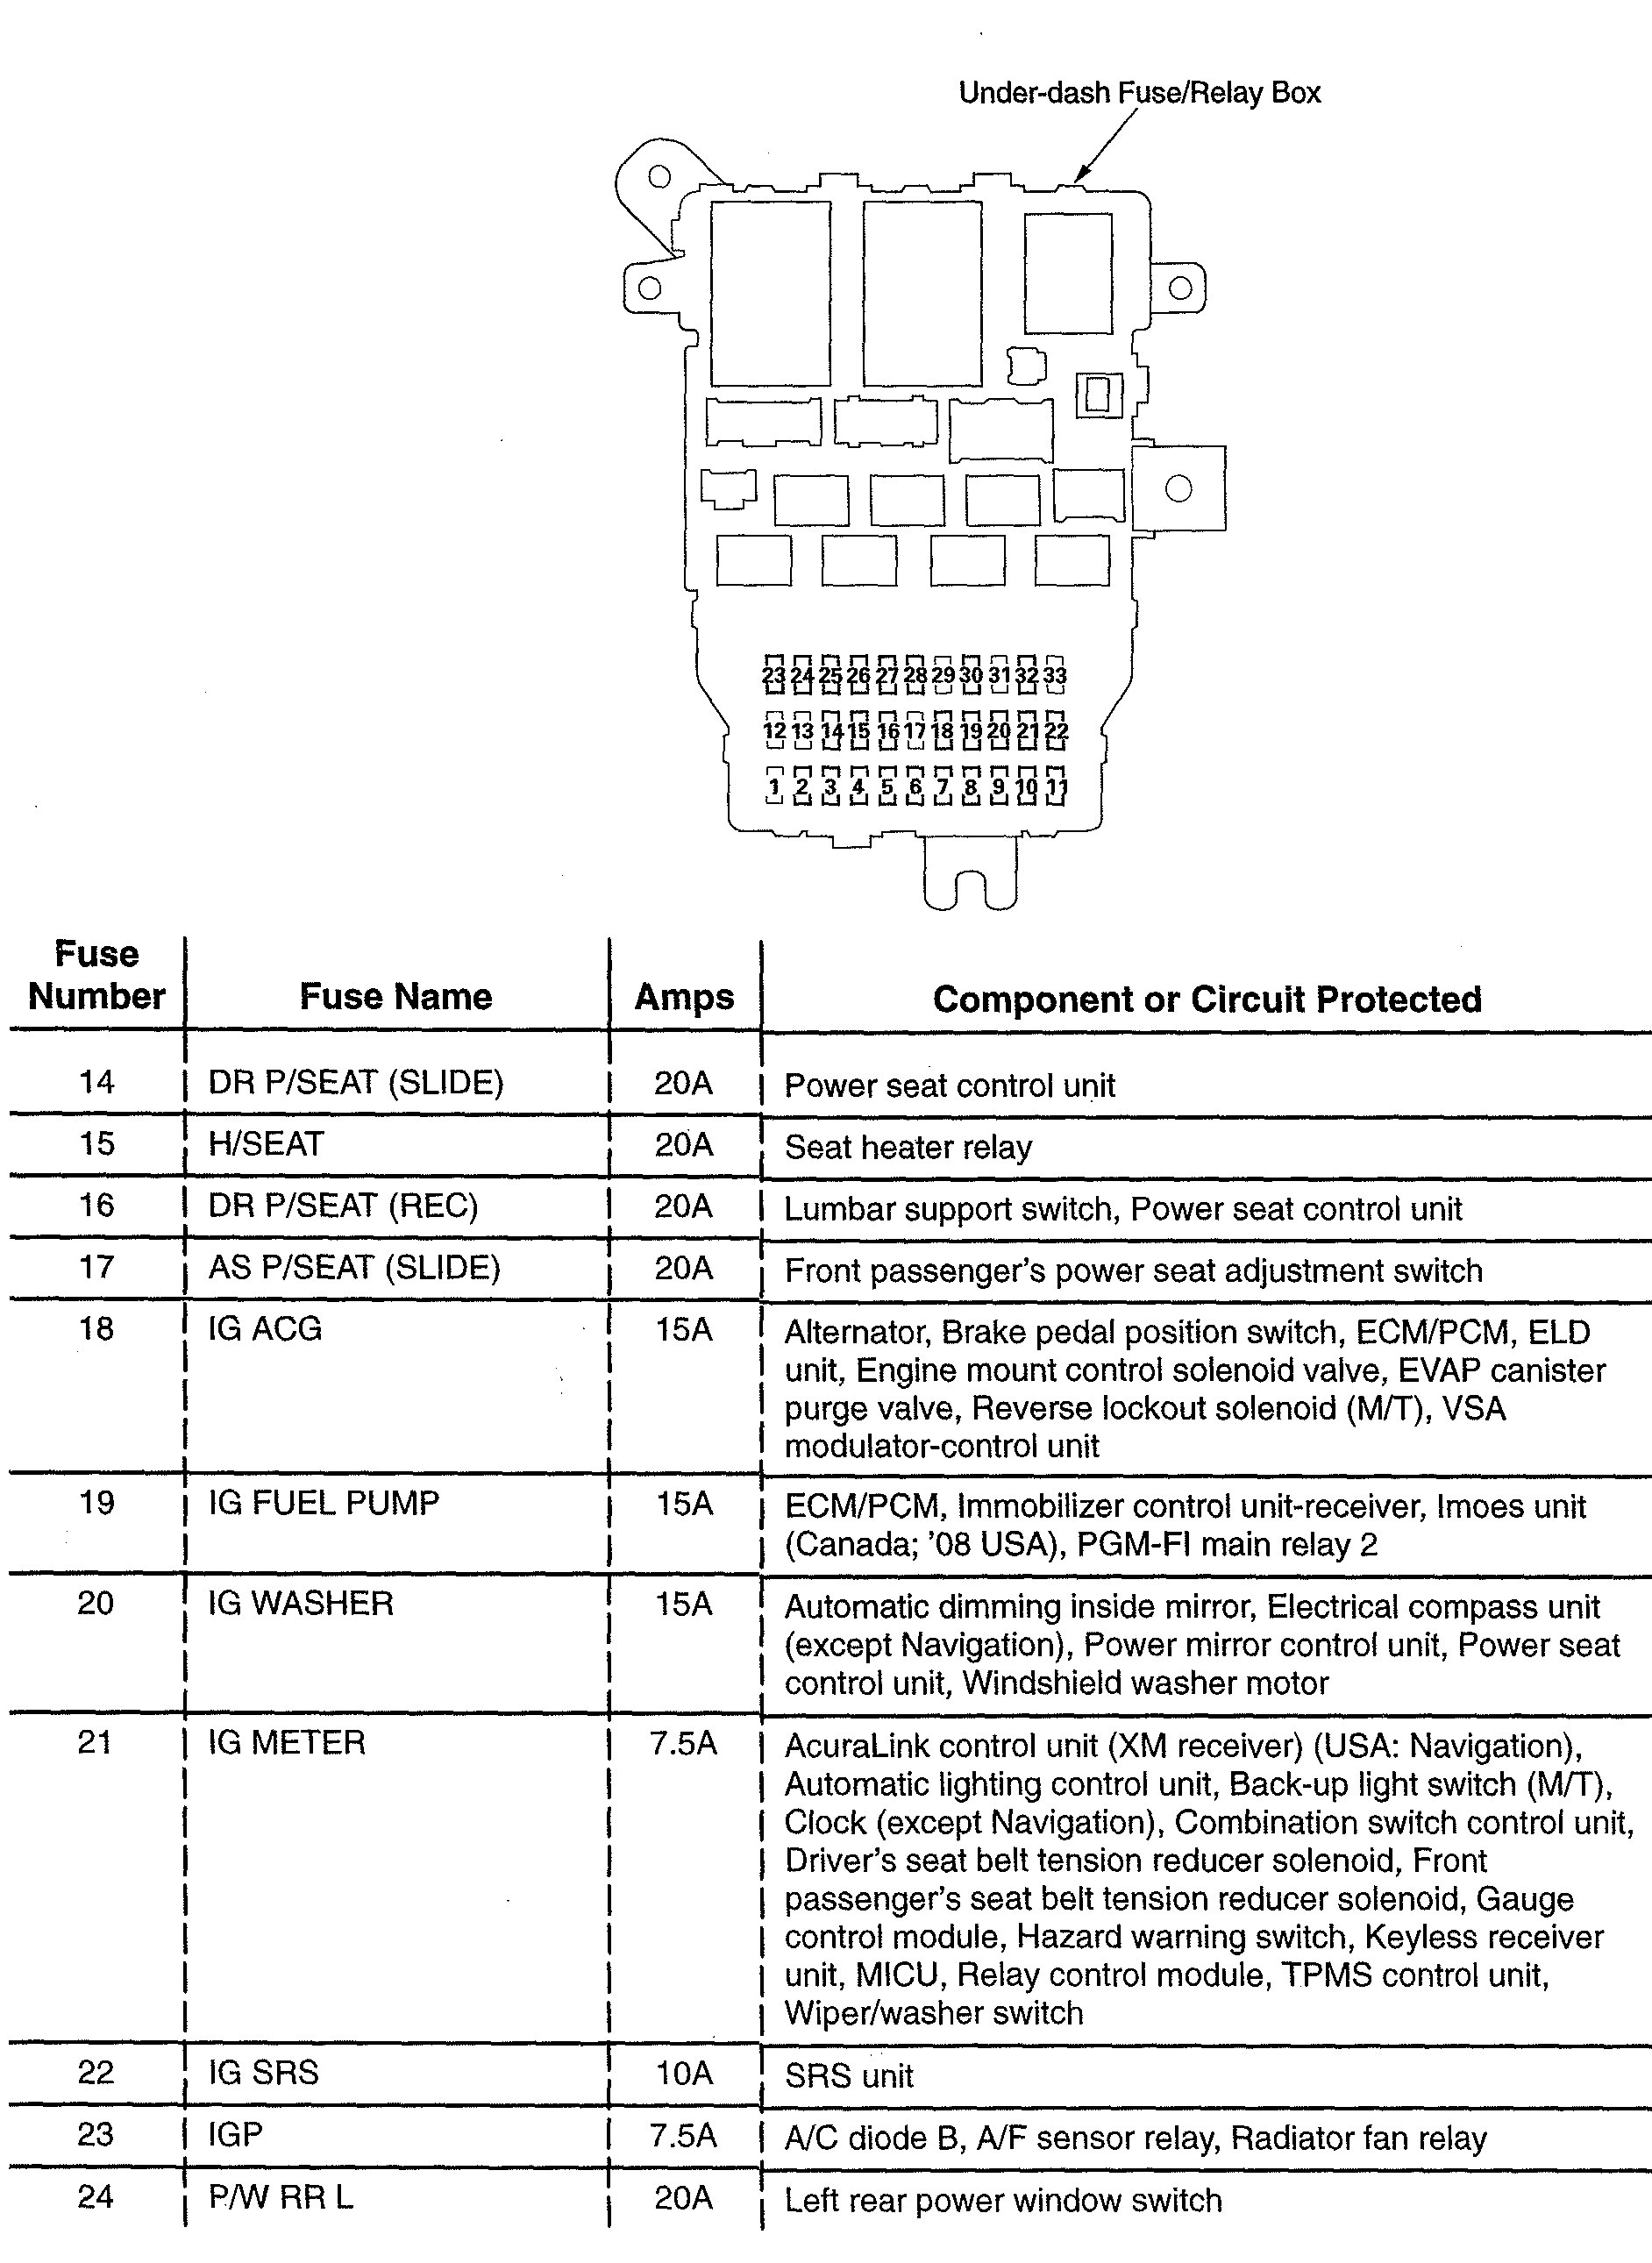 fuse box in acura tl wiring diagram